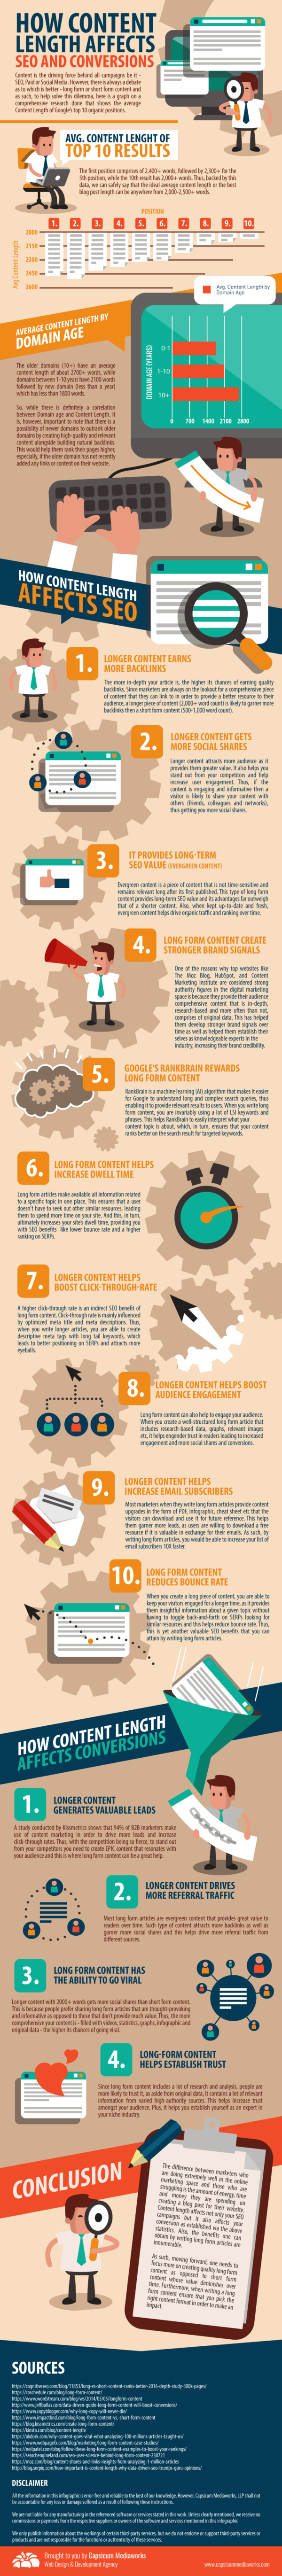 How Content Length Affects SEO and Conversion